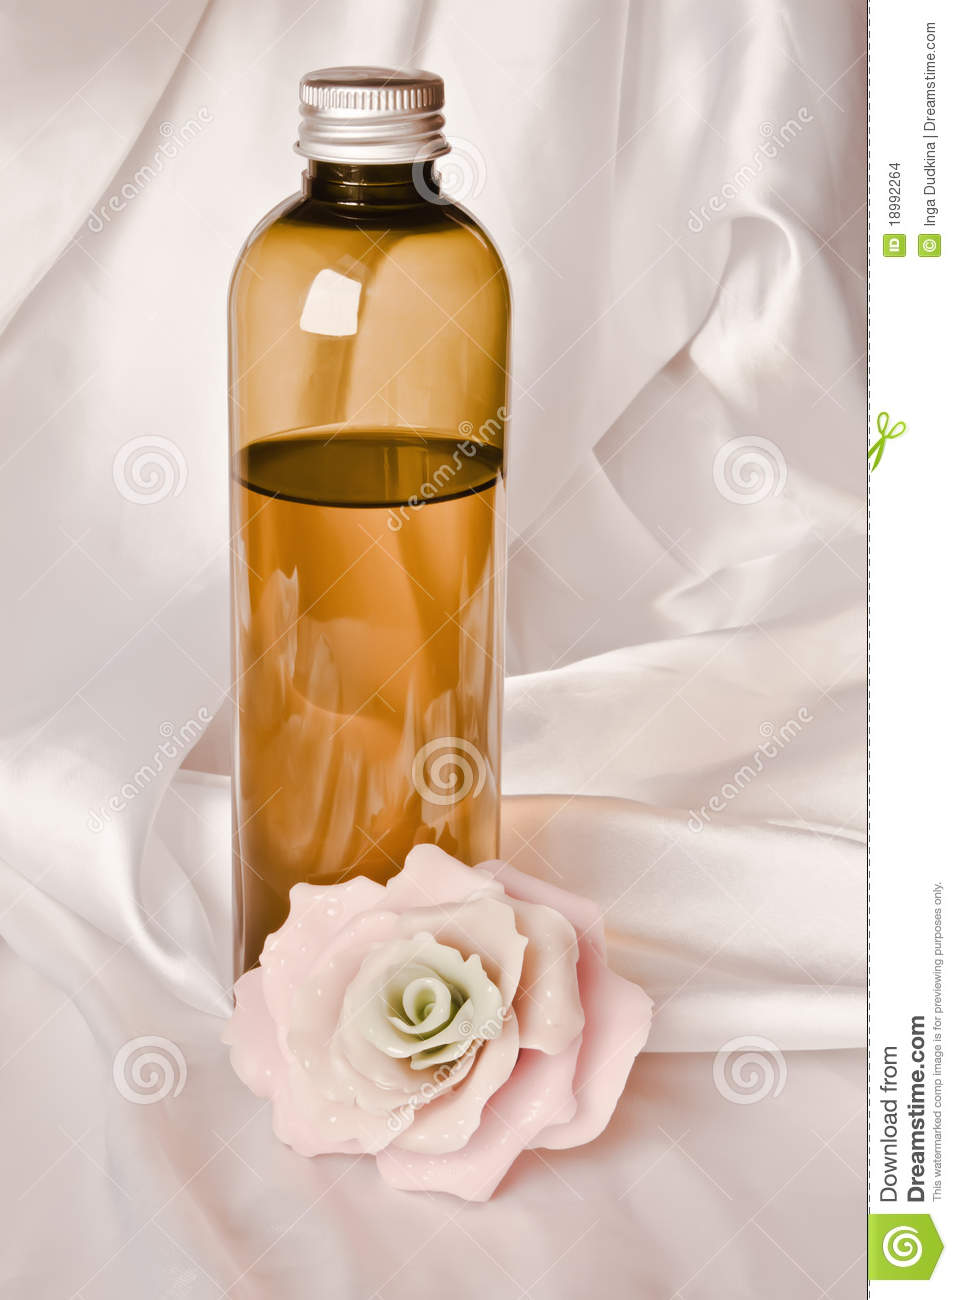 Essential oil and rose stock images image 18992264 - Rose essential oil business ...